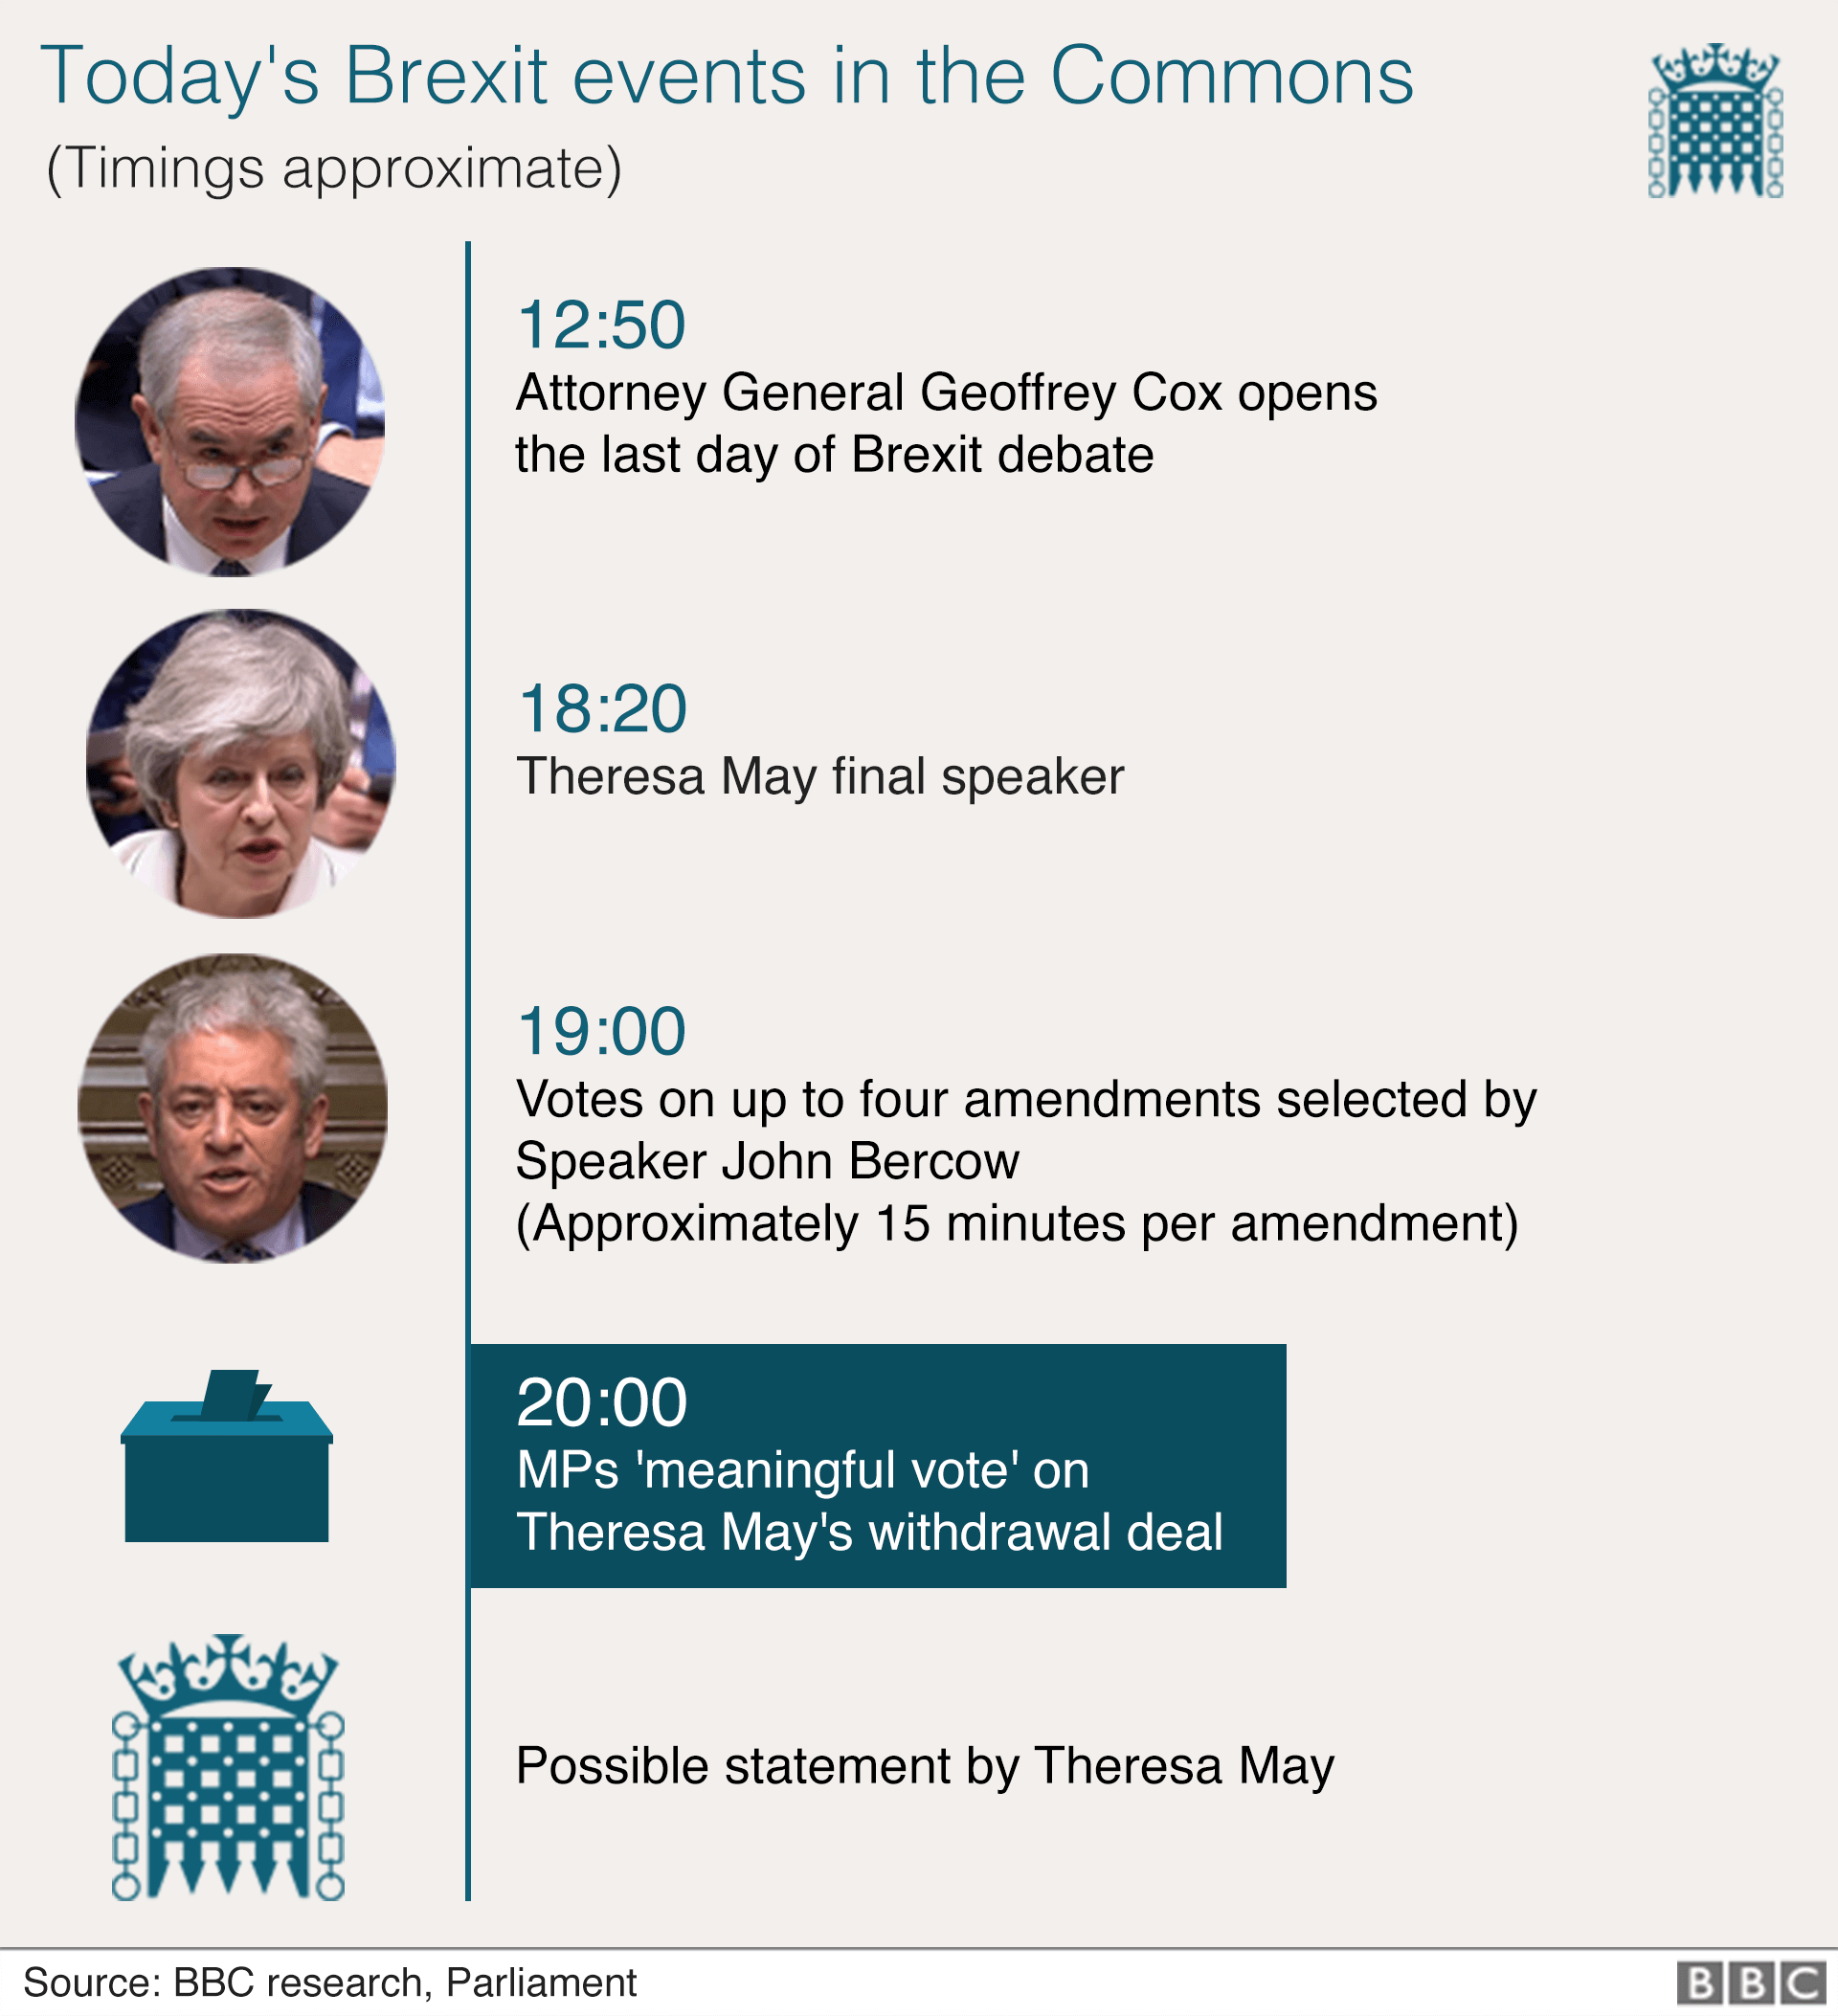 Chart showing schedule of Commons Brexit events: 1250 Attorney General opens the last day of debate. 18:20 Theresa May last speaker. 1900 Votes on up to four amendments. 2000 MPs meaningful vote. Possible statement by Theresa May.